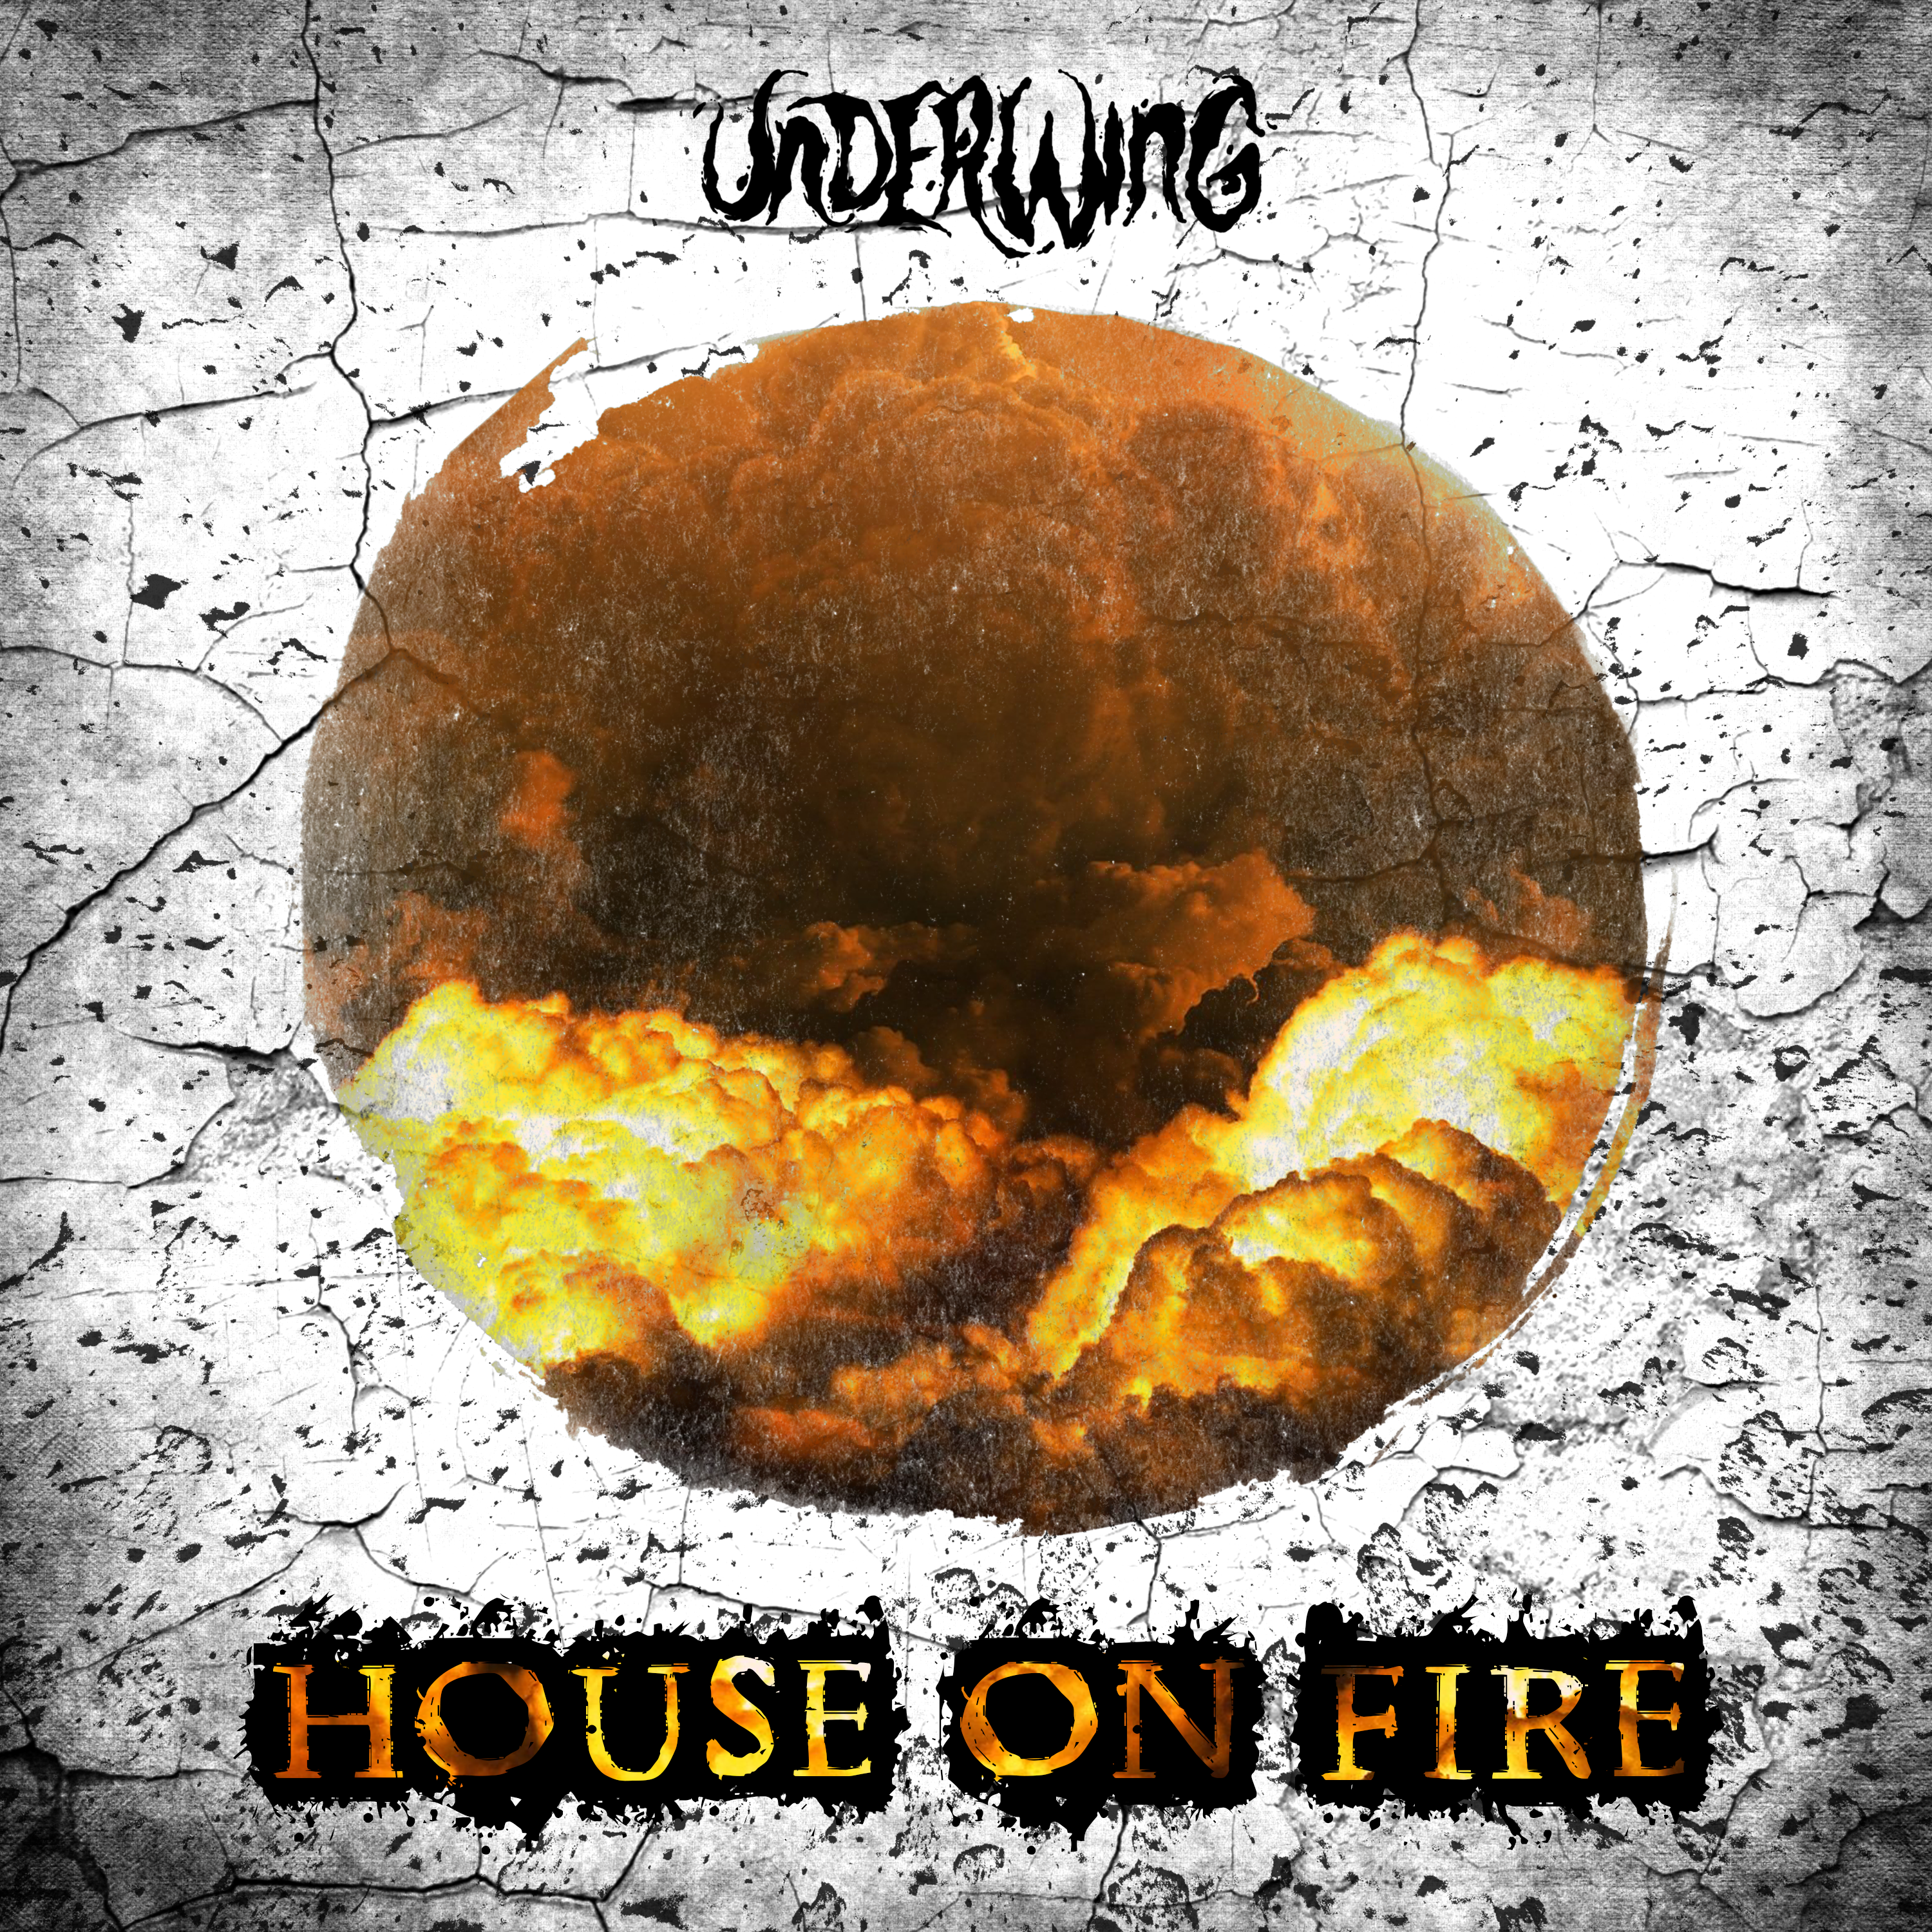 House on Fire artwork example 3